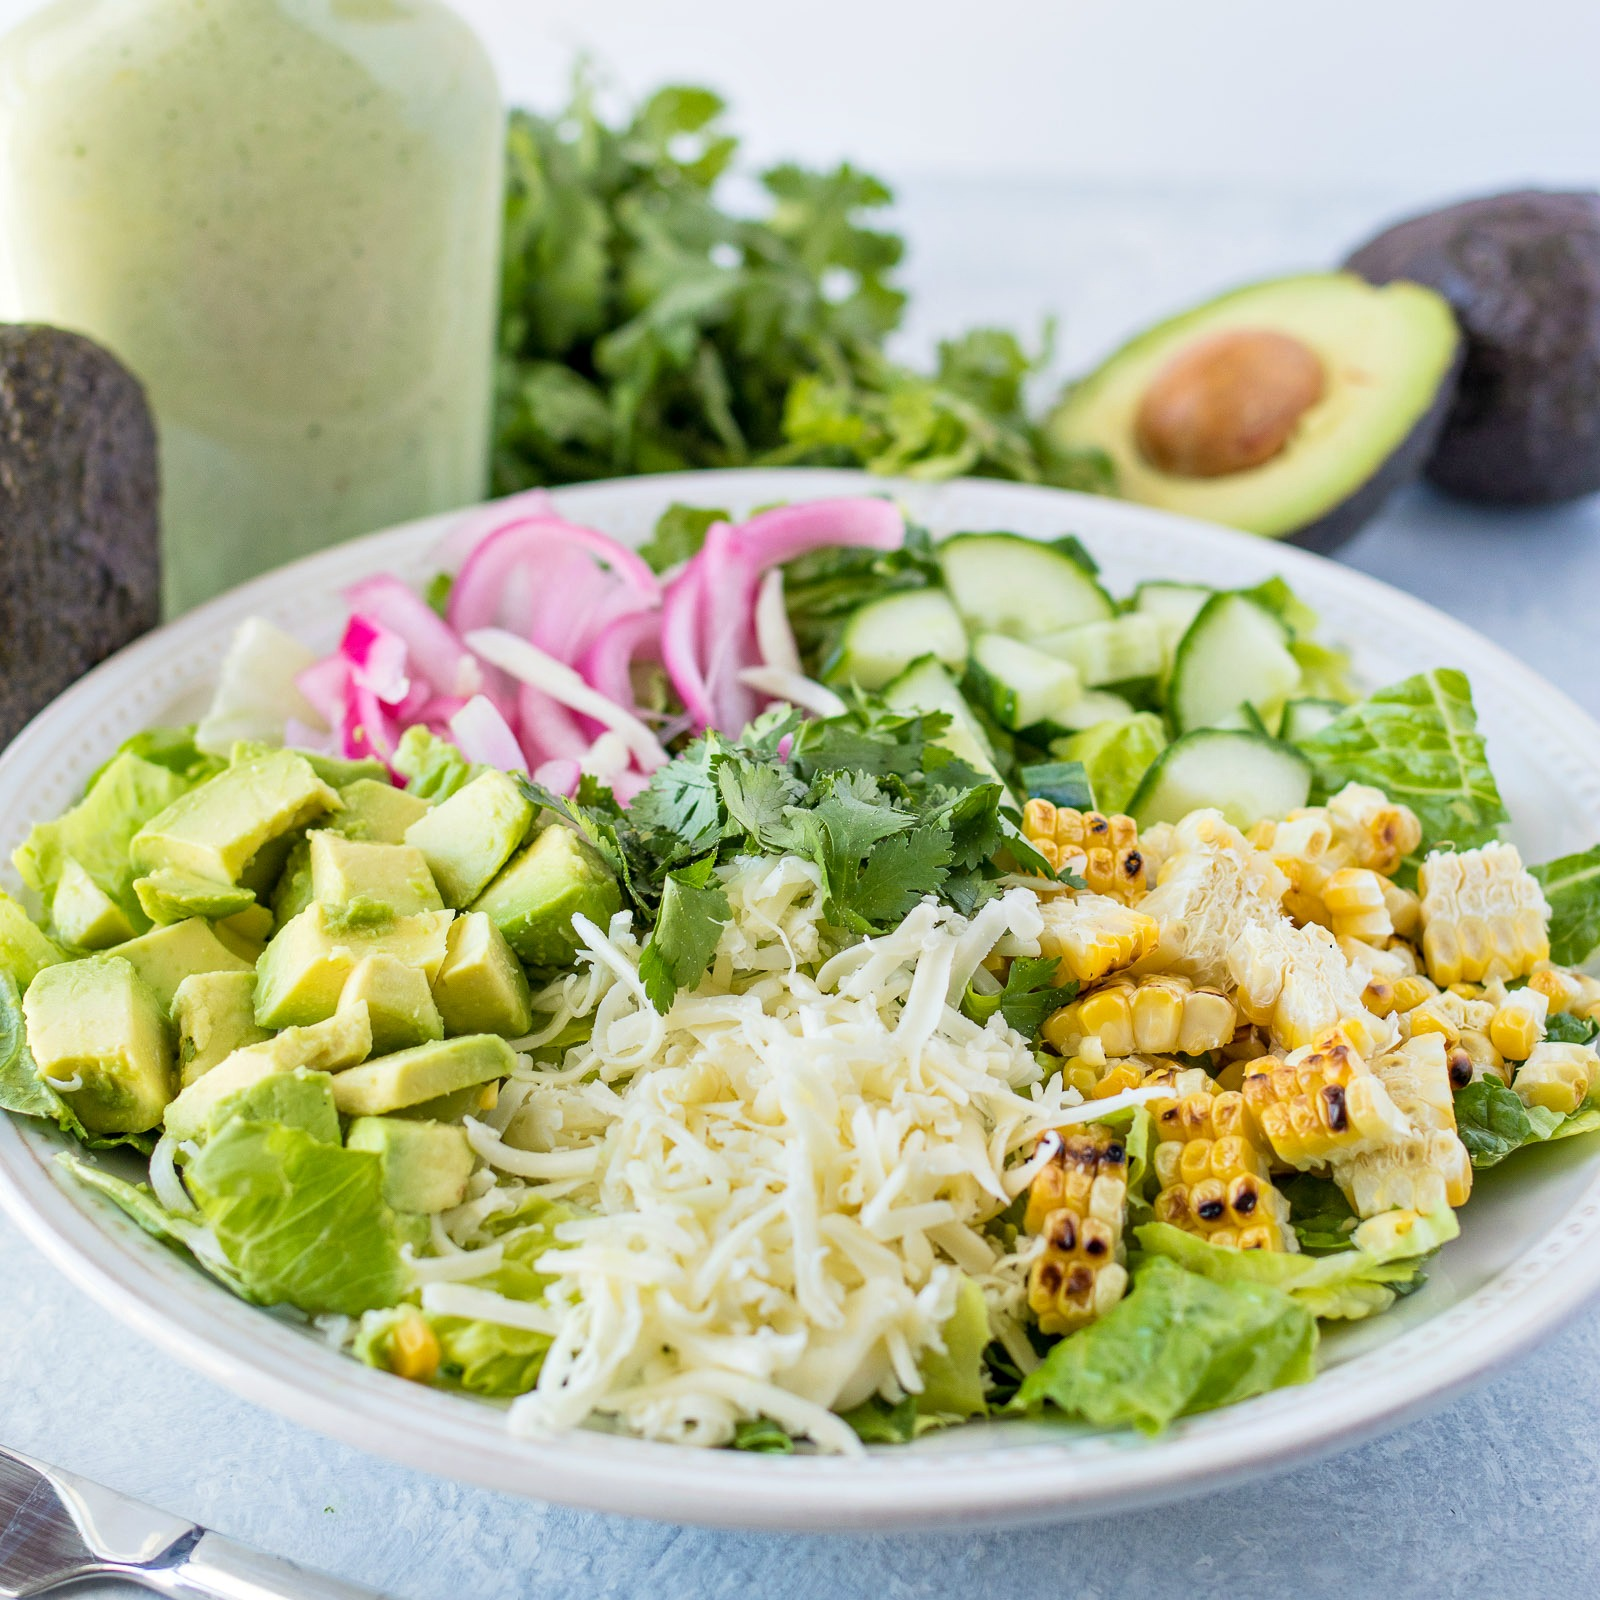 Avocado and Charred Corn Salad with Cilantro Ranch Dressing -A refreshing and filling salad, made with leafy greens, diced avocado, charred corn, picked red onions, diced cucumbers, shredded Monterrey Jack cheese, and chopped cilantro, tossed with a homemade cilantro ranch dressing.